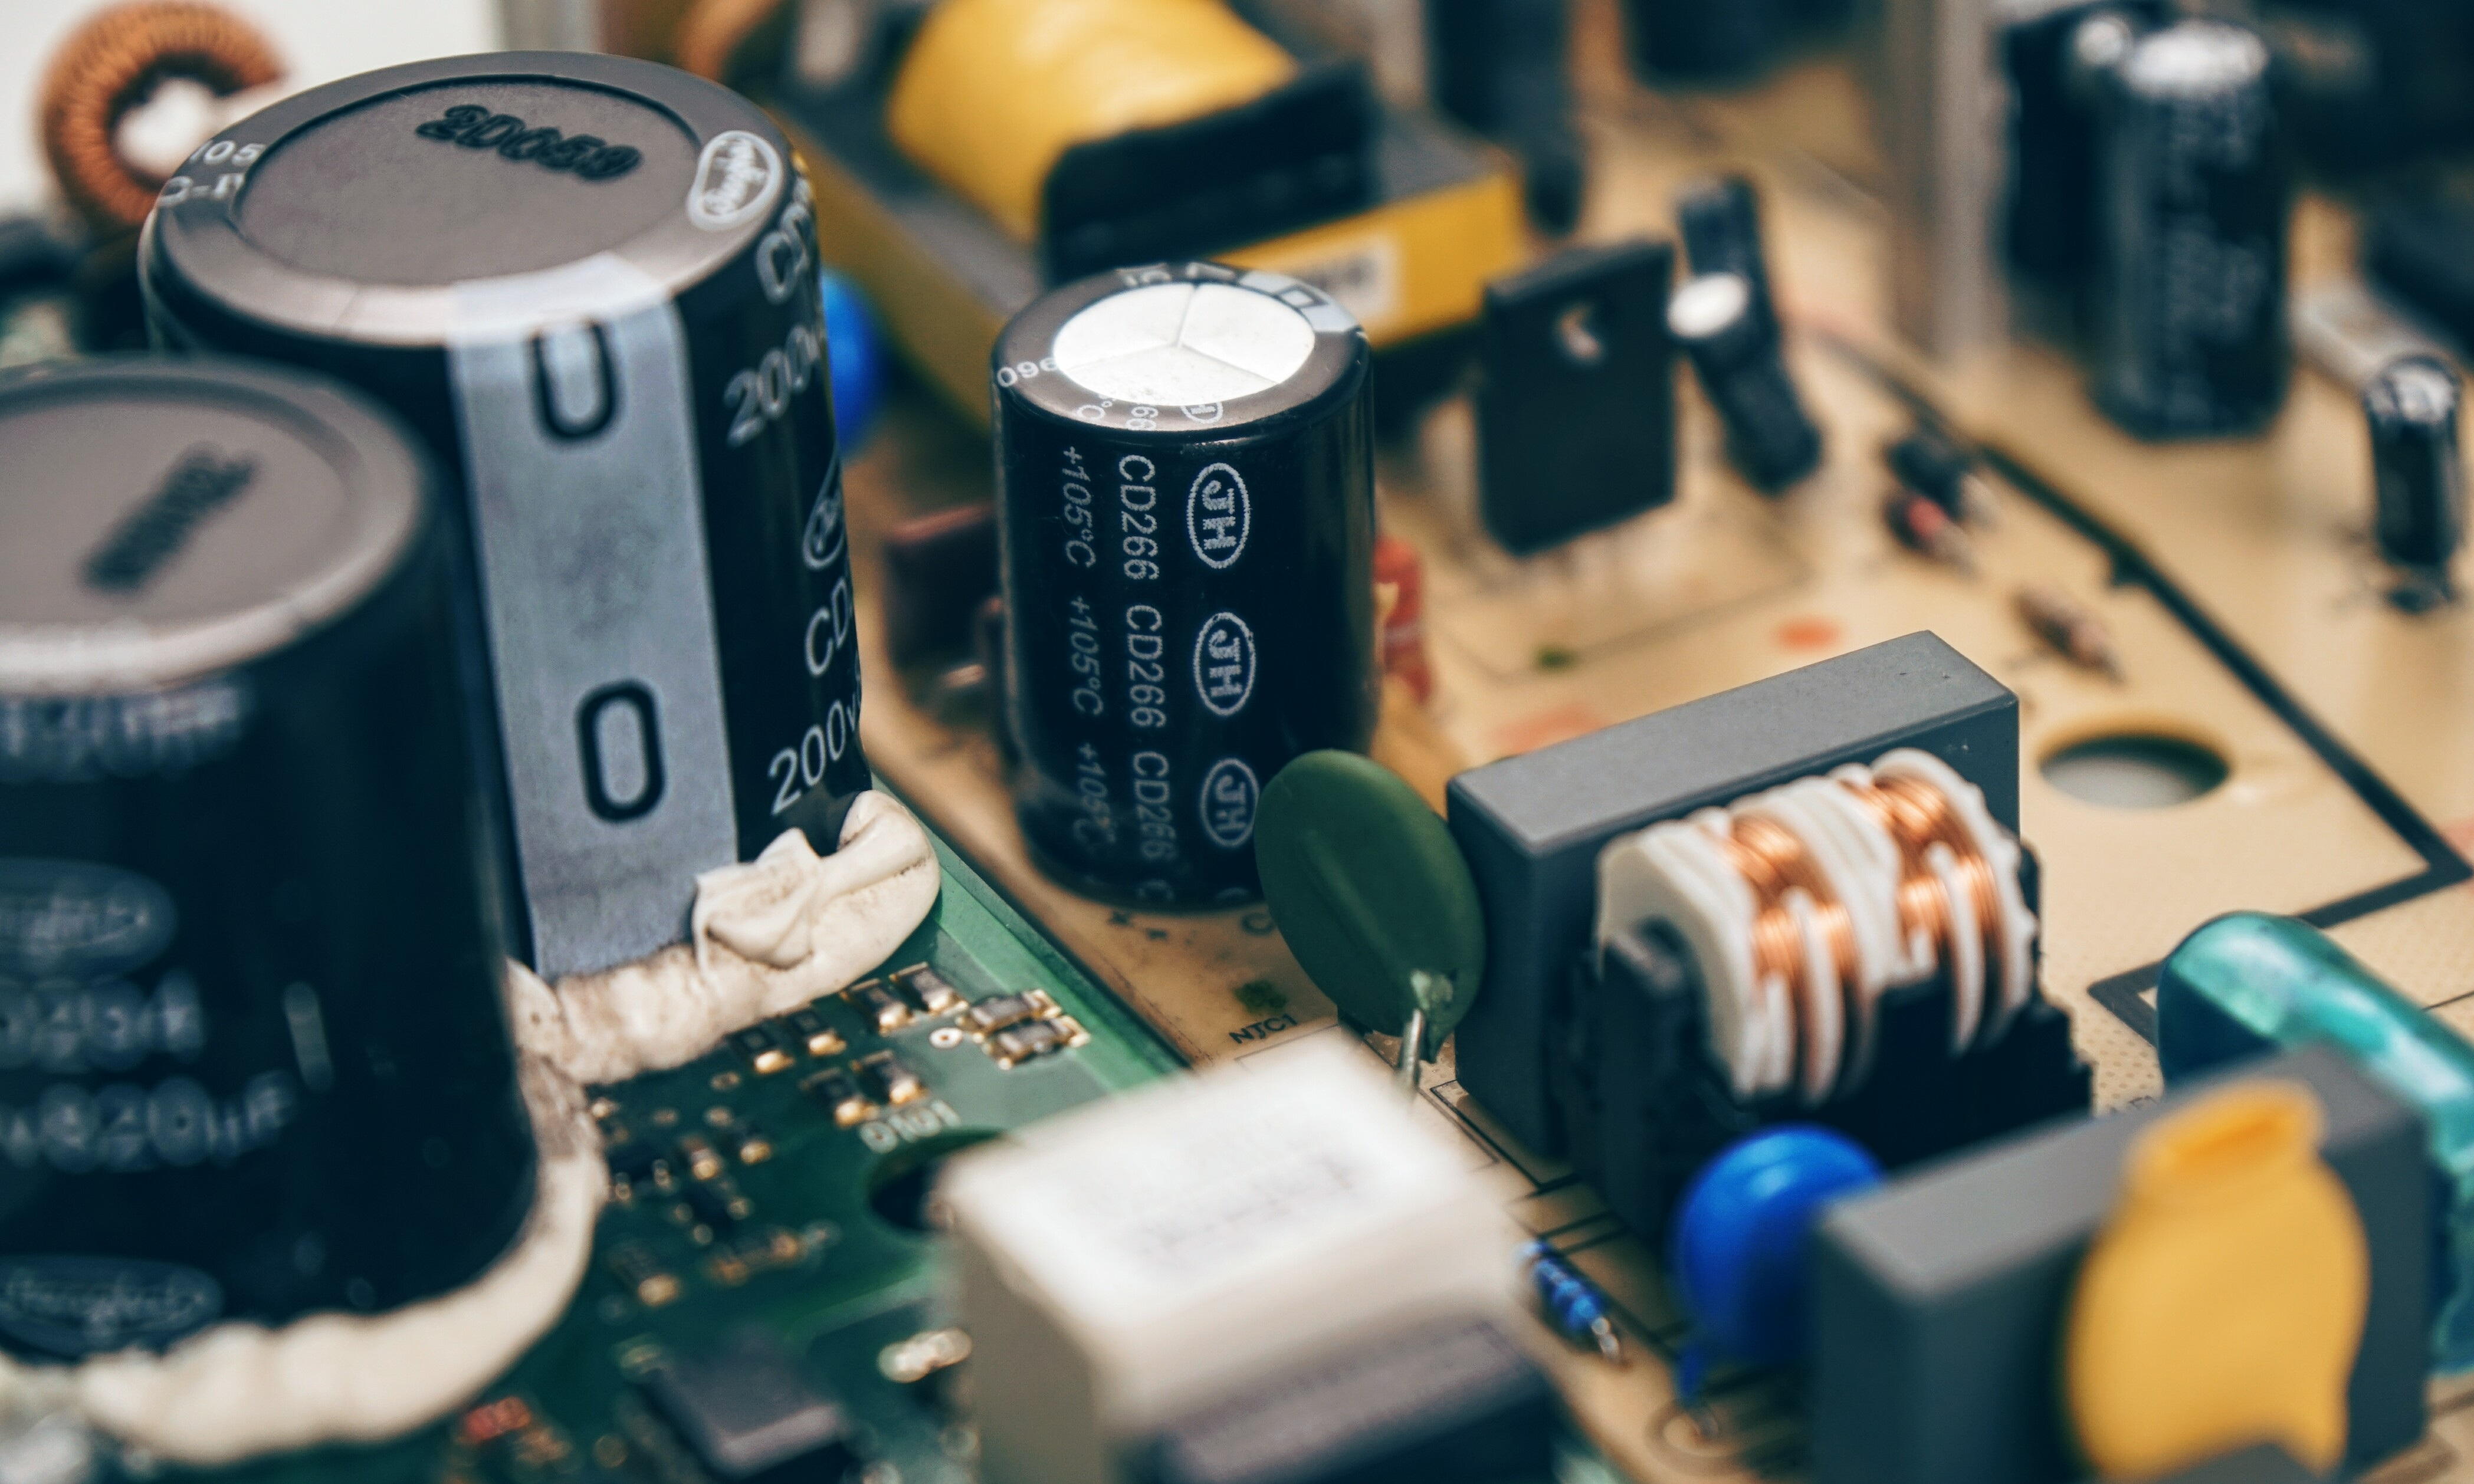 How To Test Capacitors On A Circuit Board